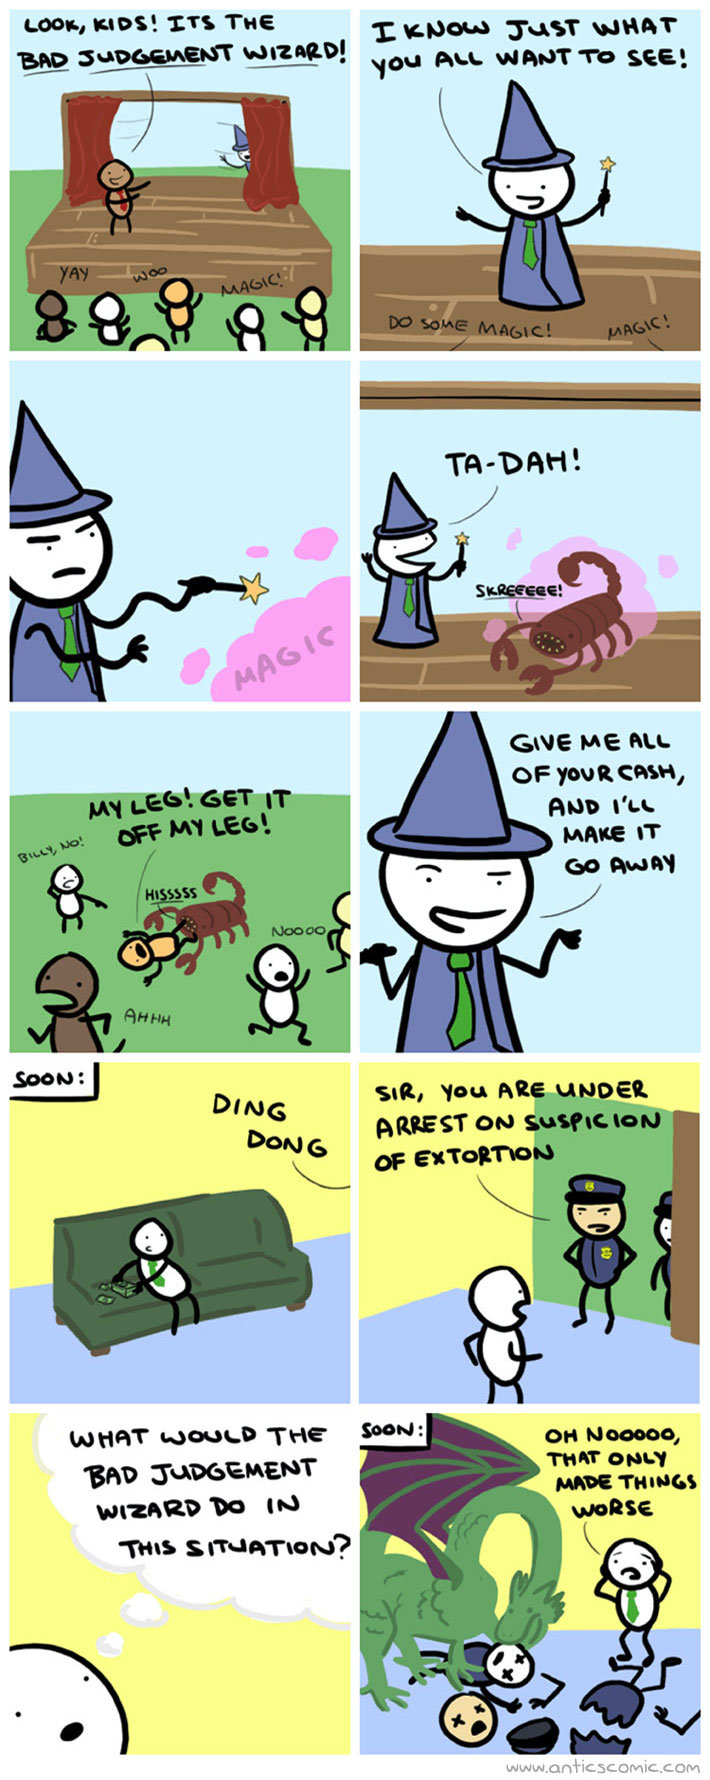 """Bad Judgment Wizard. Hope you enjoy credit goes to artist Sorry if its a repost):. yuan, dunnit 'ITS THE 1: 'pun Crust"""" Pu any wharf: set'."""